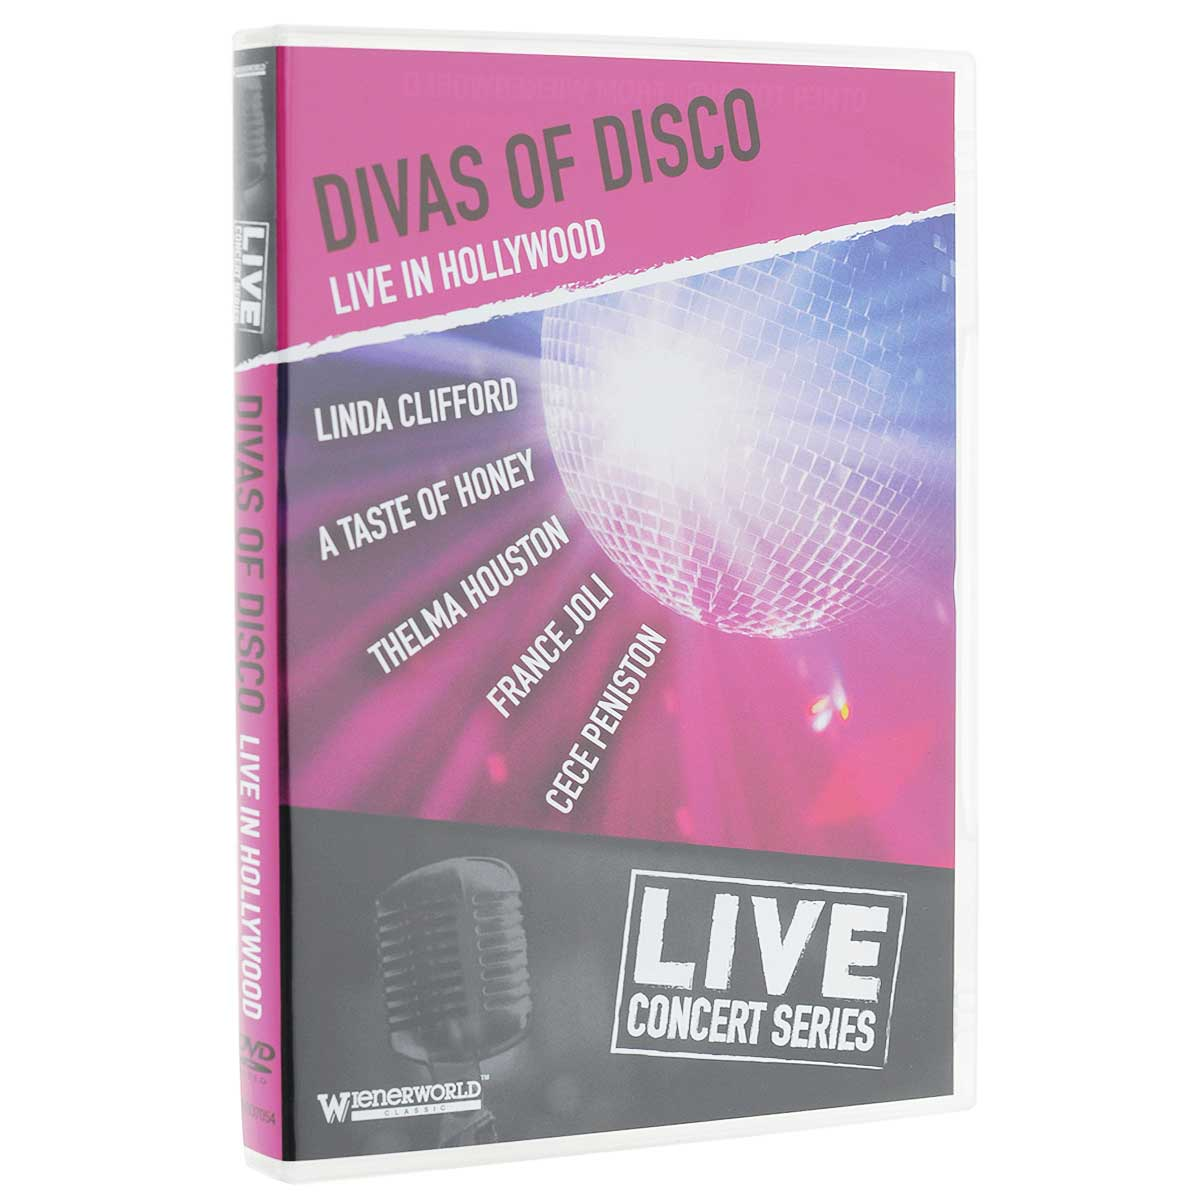 Divas Of Disco: Live In Hollywood more of me